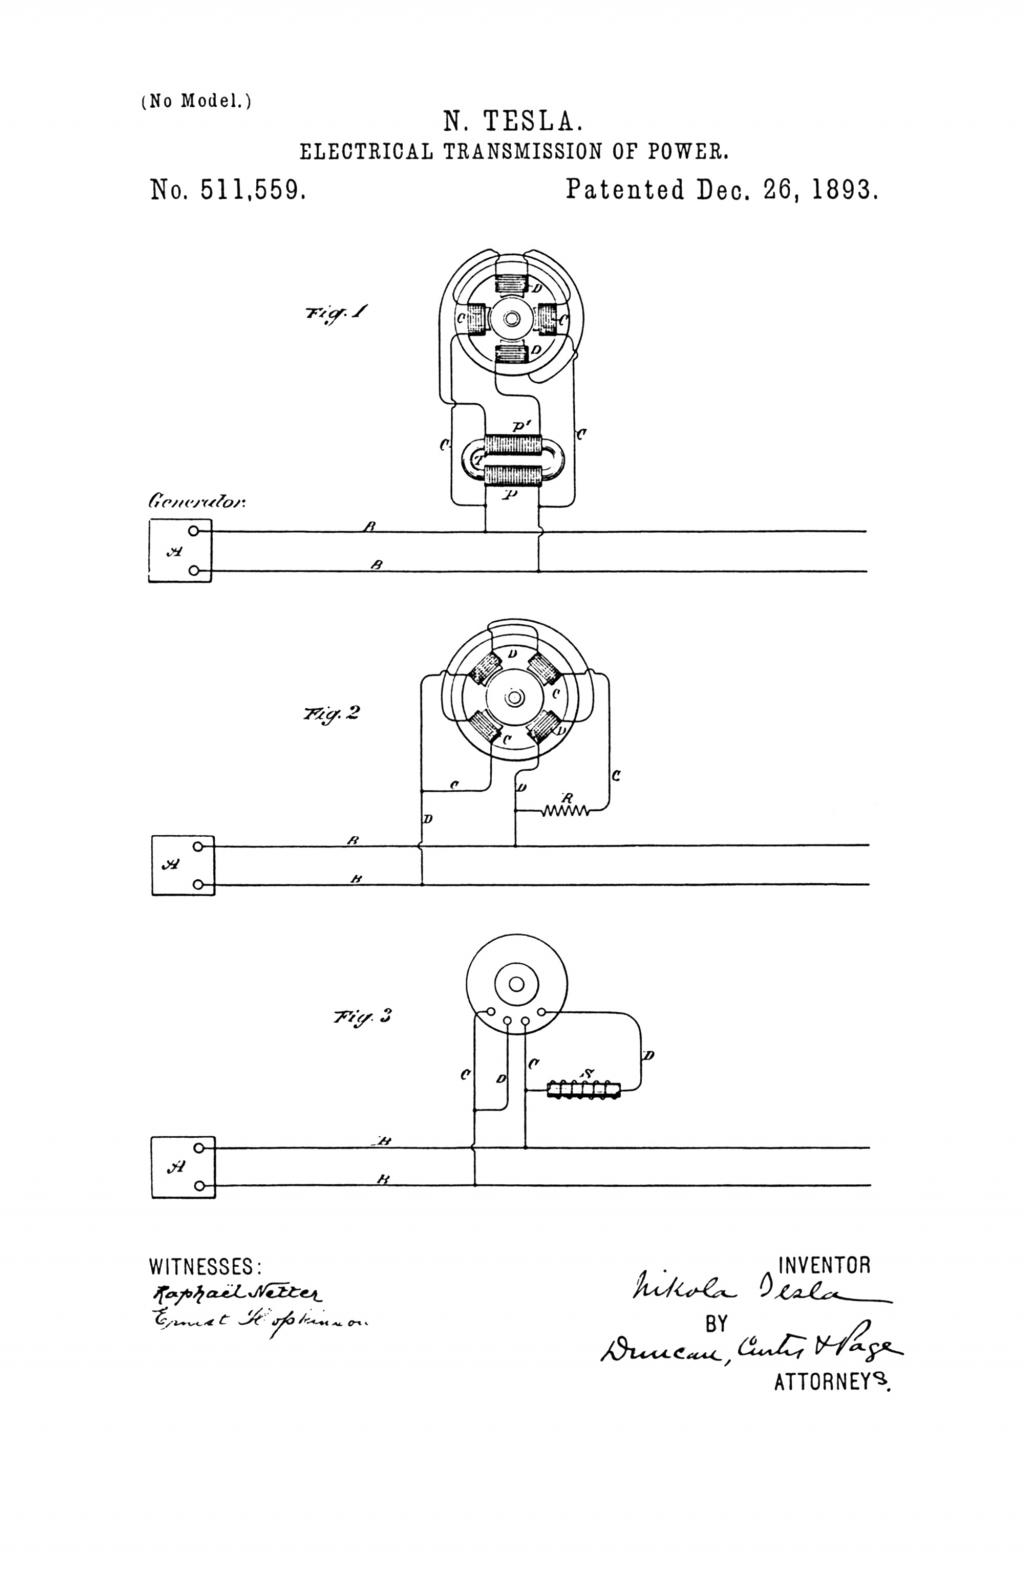 Nikola Tesla U.S. Patent 511,559 - Electrical Transmission of Power - Image 1